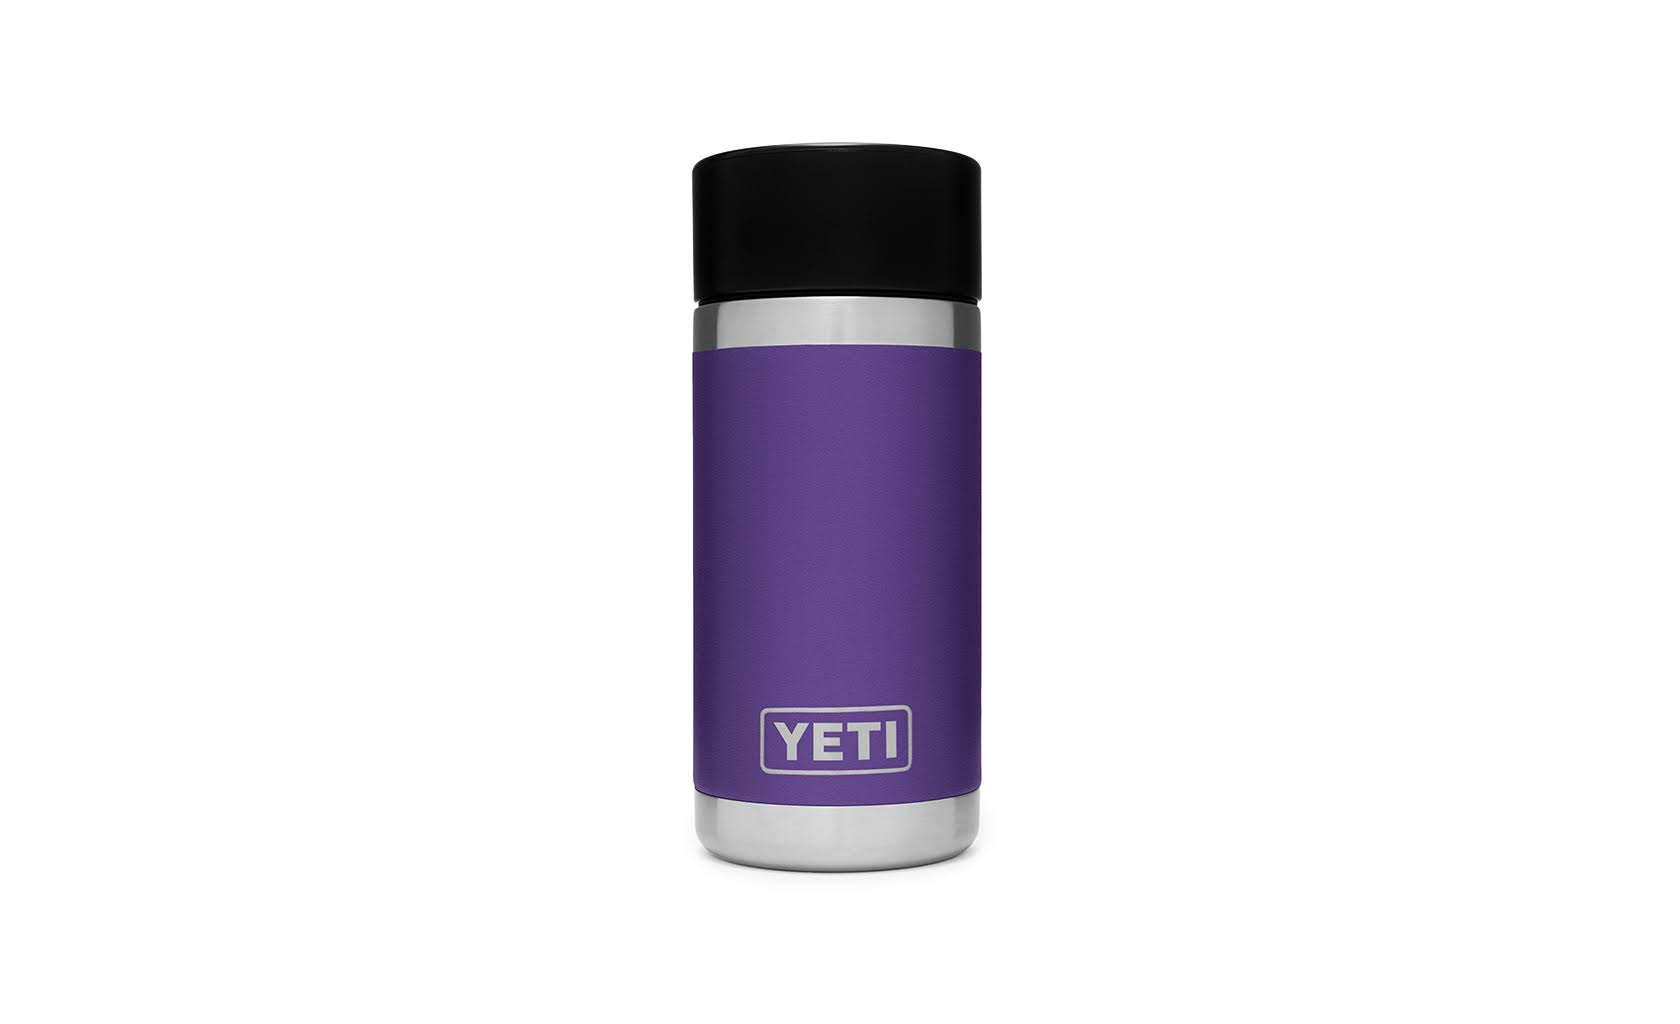 Yeti Peak Purple Rambler 12 oz Bottle with Hotshot Cap